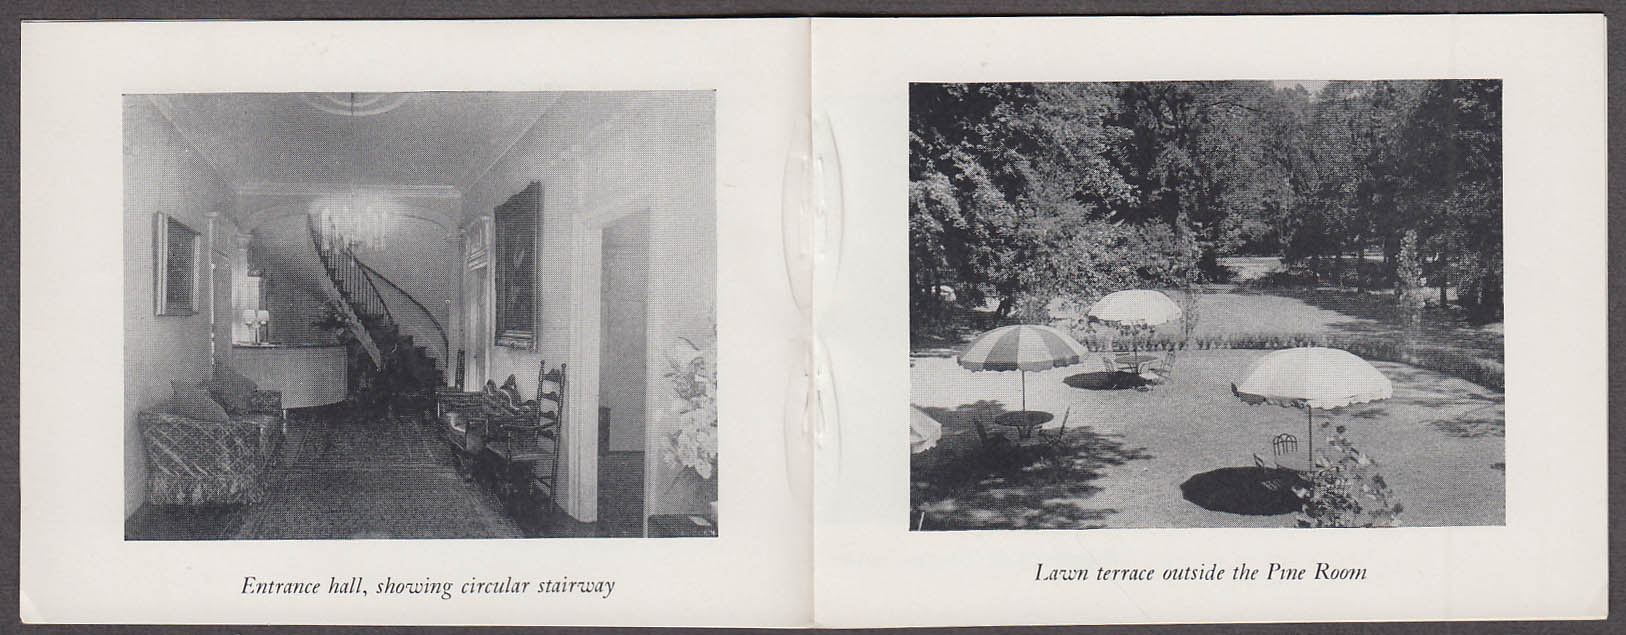 Cooper Inn Cooperstown NY miniature brochure ca 1950s